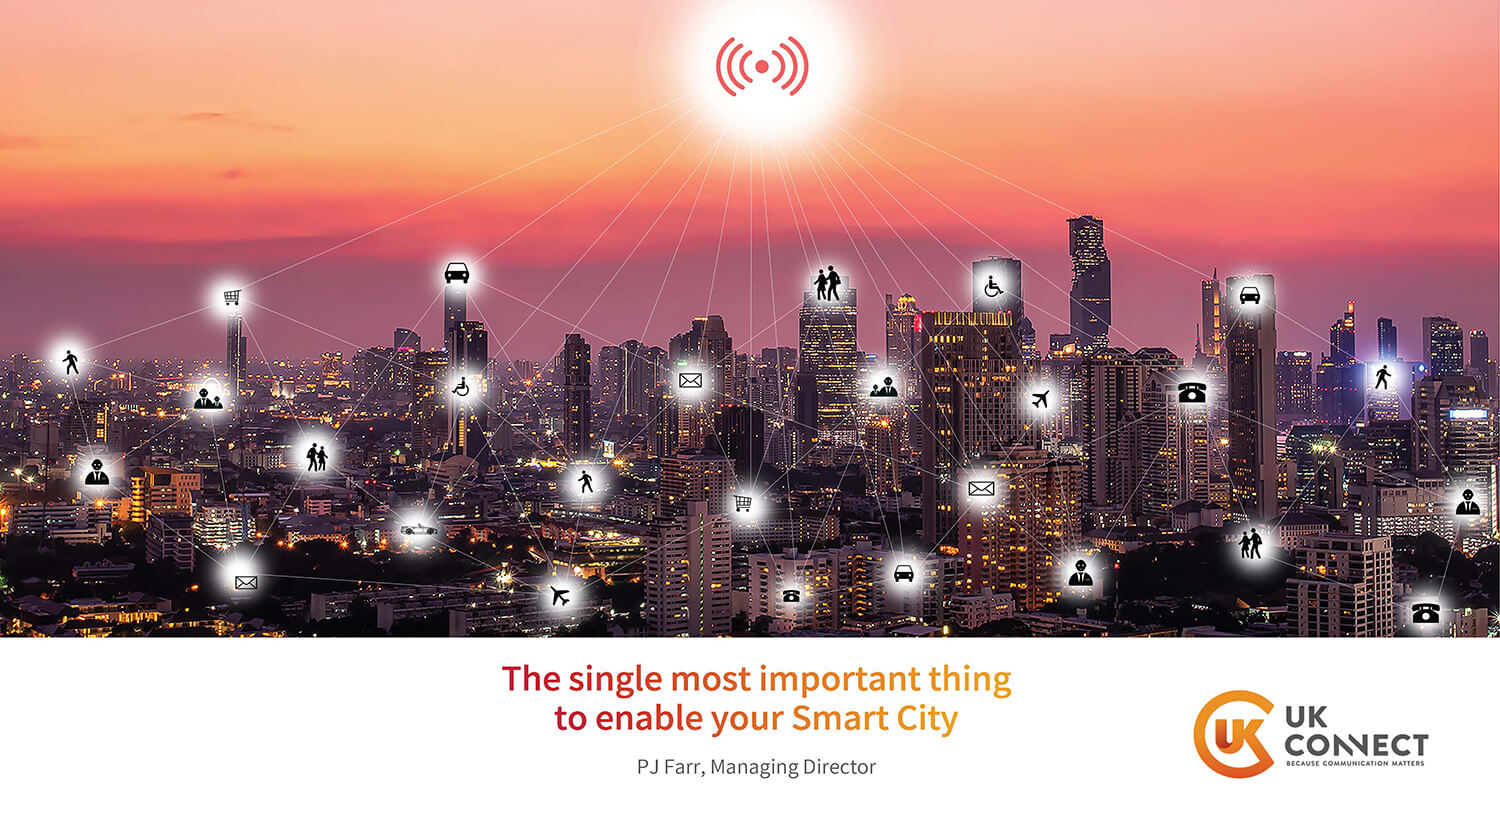 The single most important thing to enable your smart city presentation